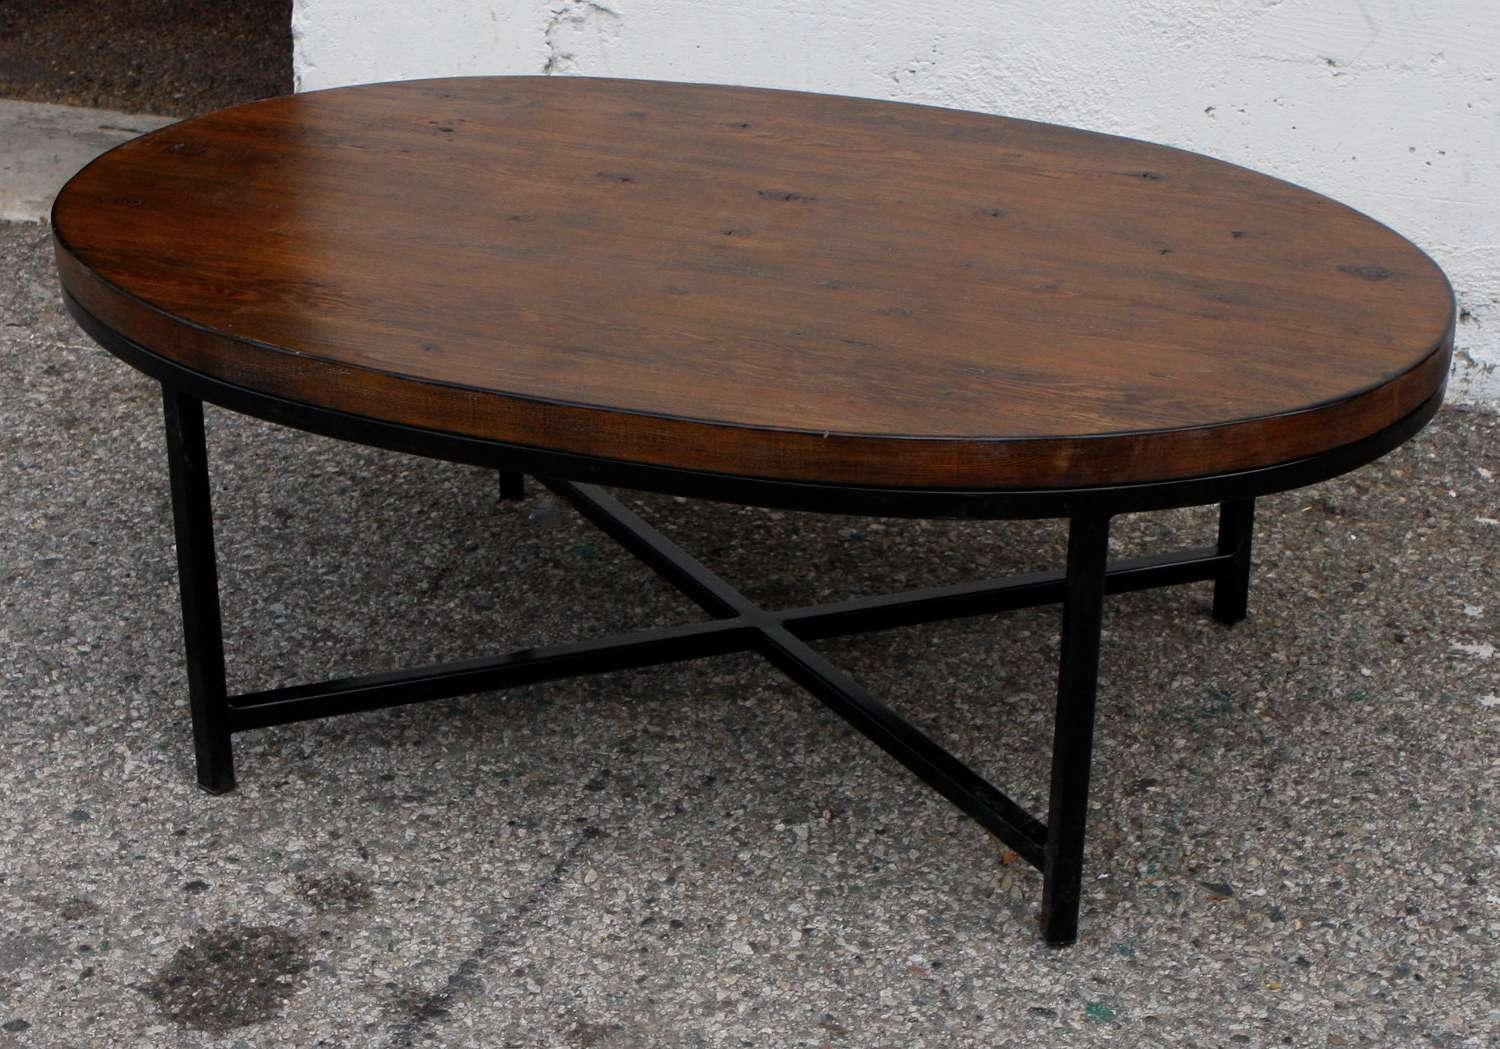 Widely Used Black Wood Coffee Tables In The Lovable Black Distressed Coffee Table (View 19 of 20)